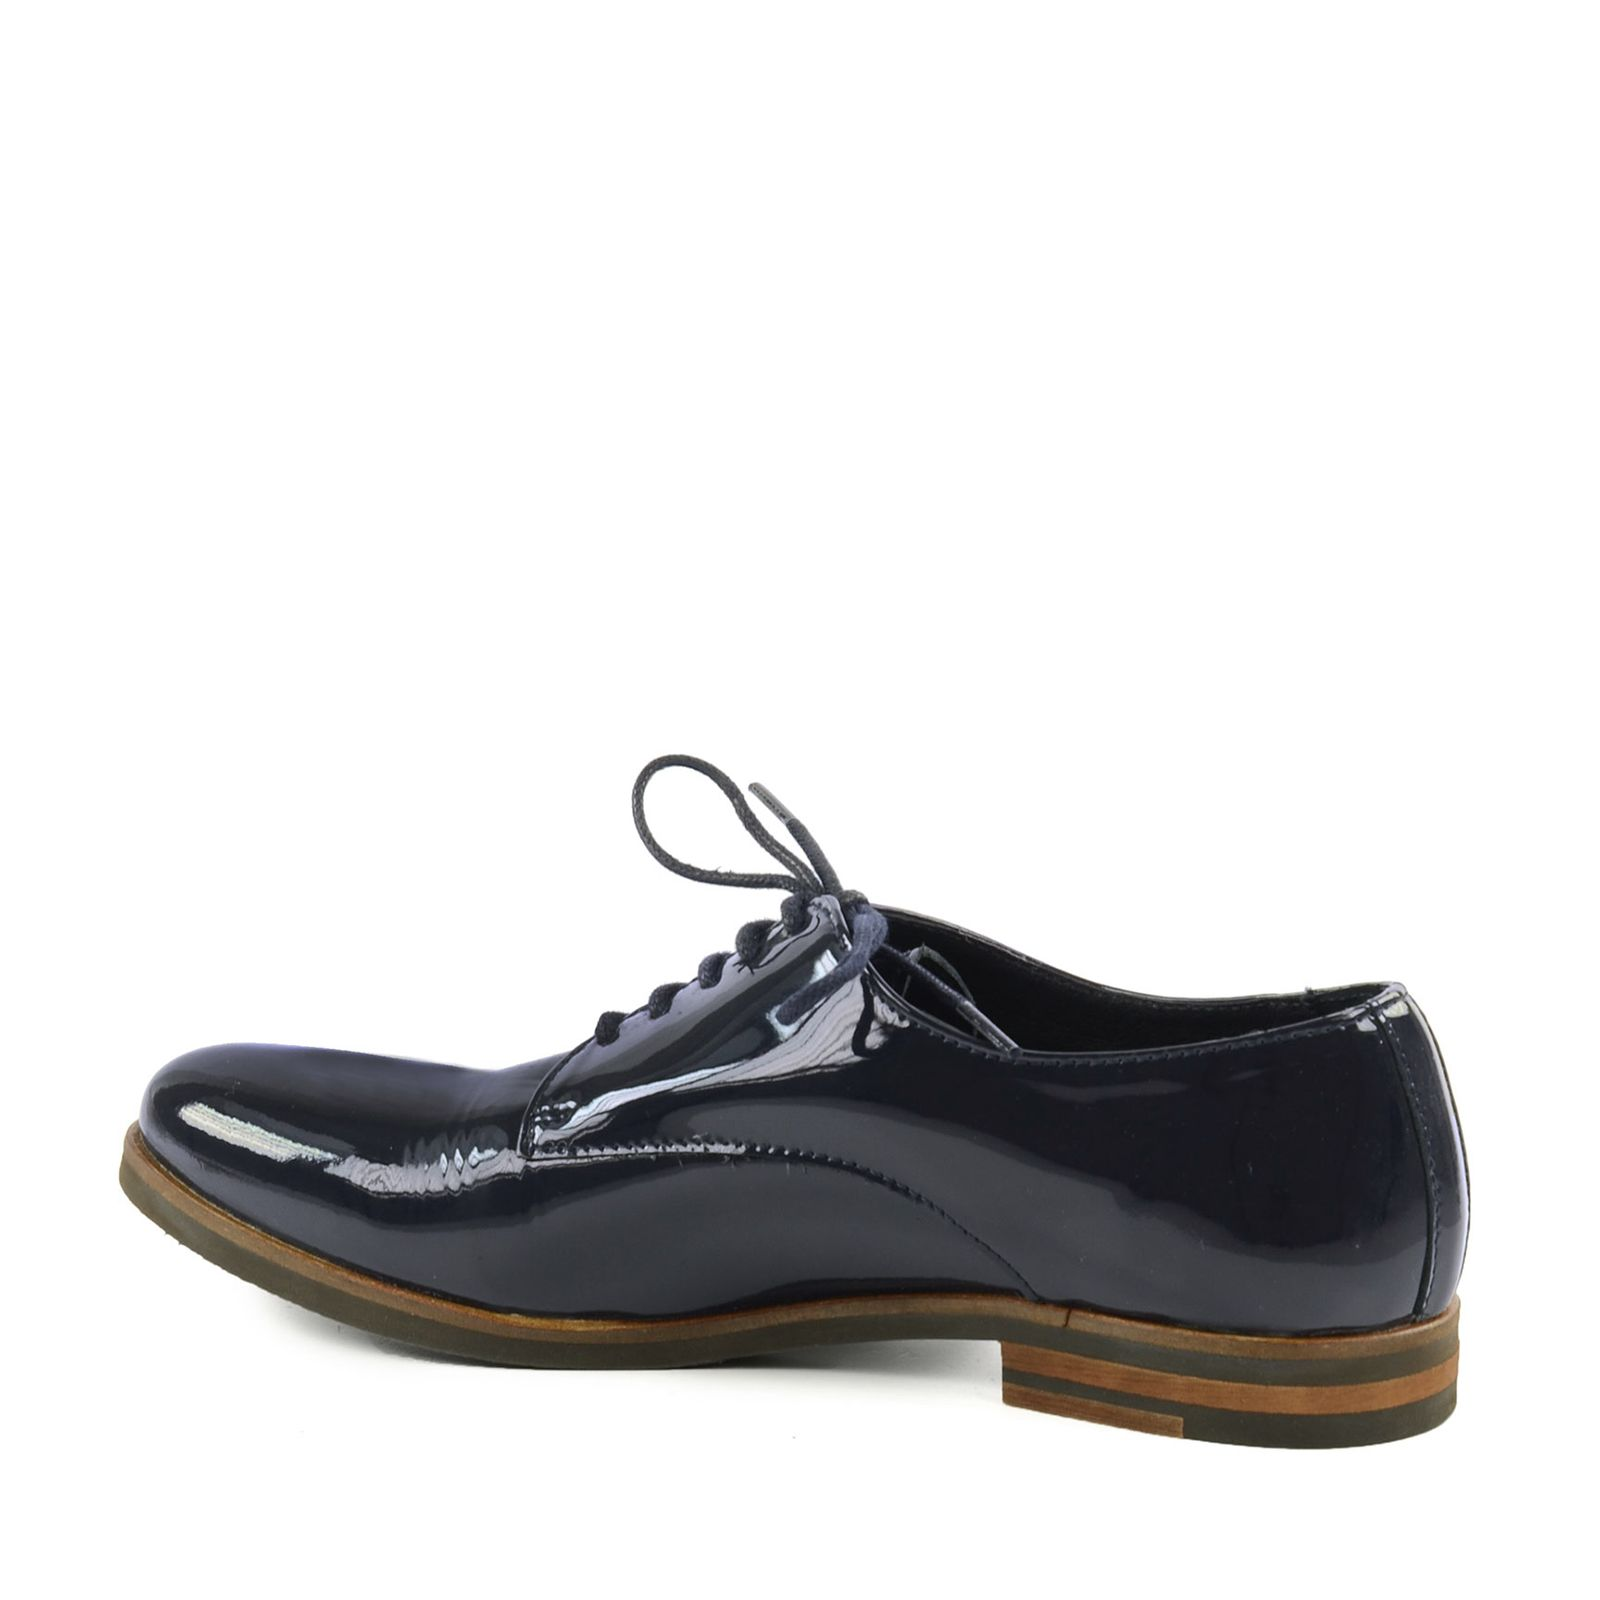 chaussures lacets vernies